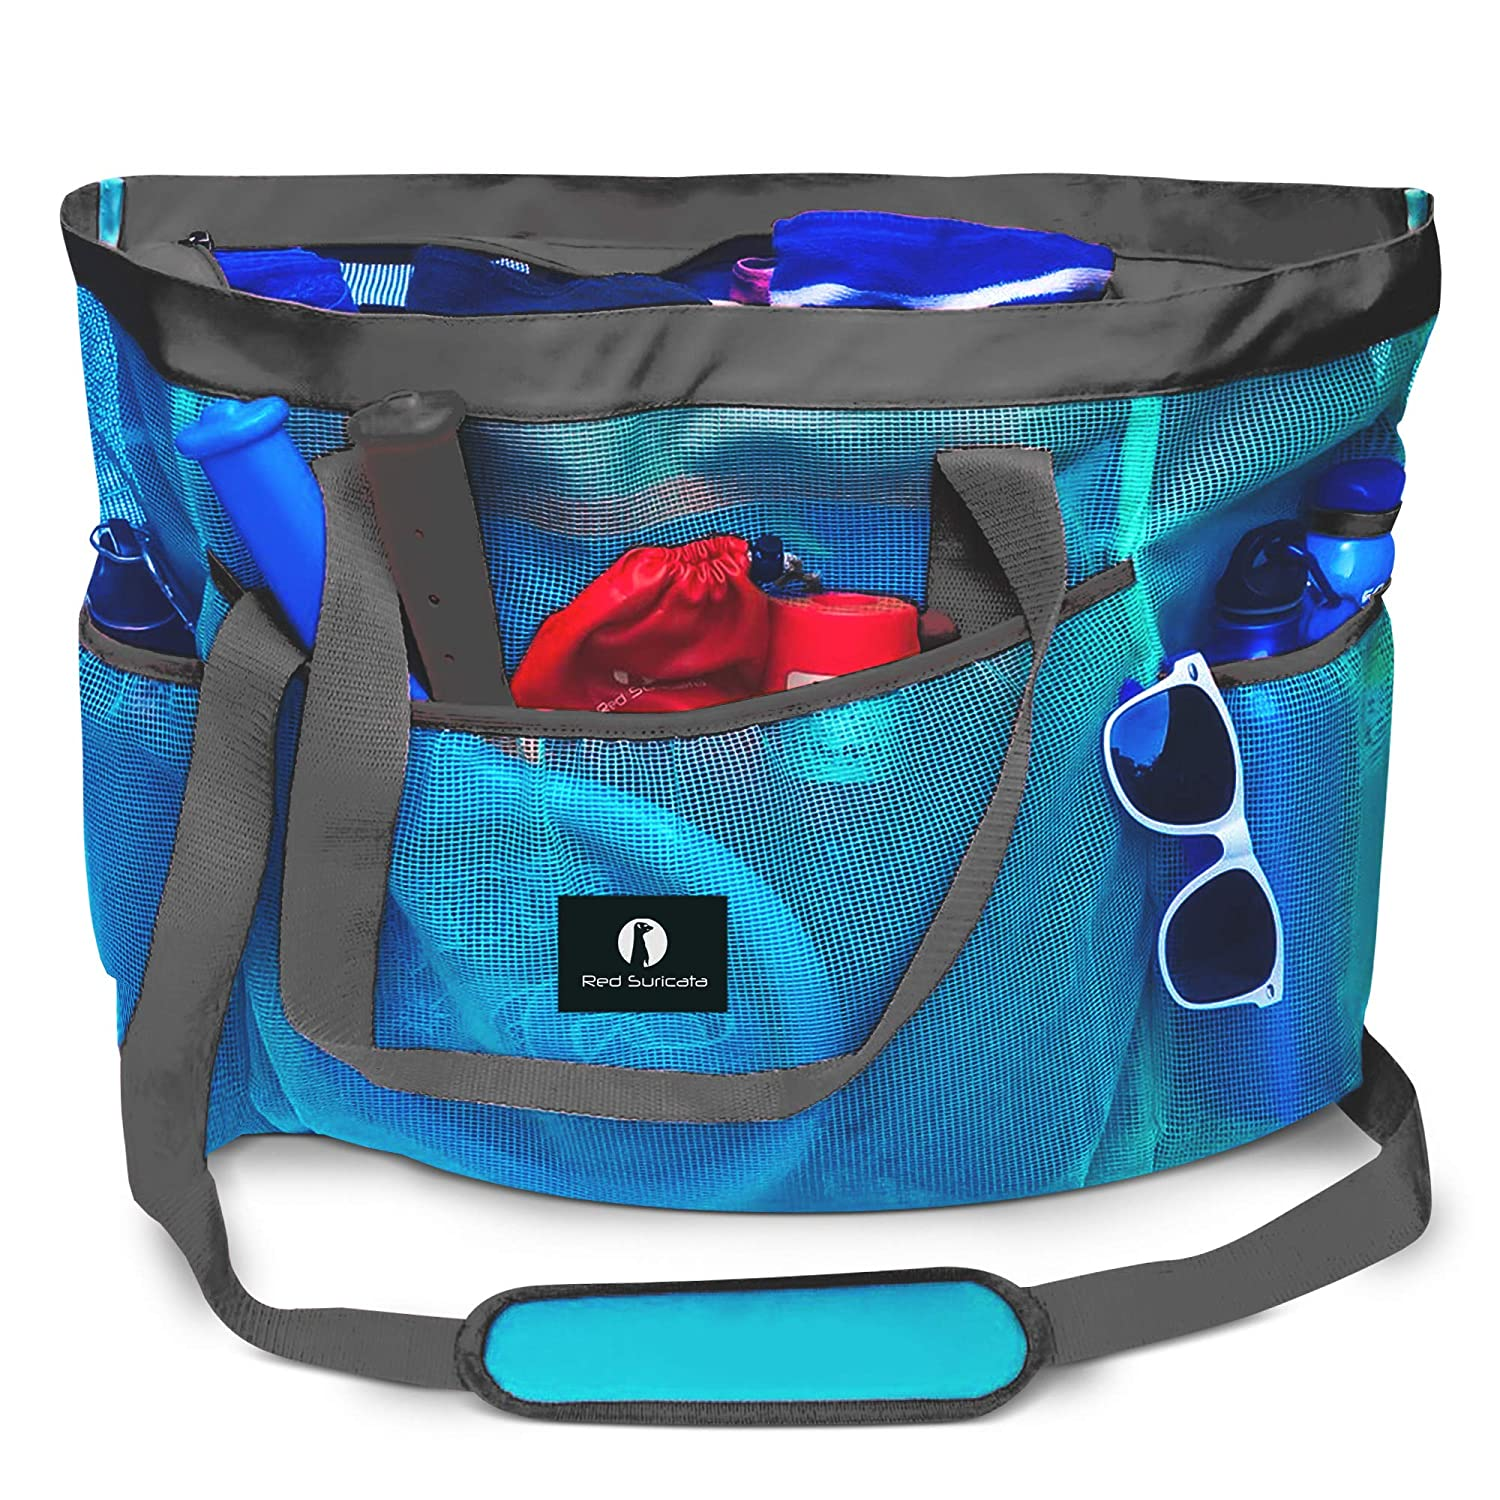 Red Suricata Large Mesh Beach Bag Mesh Beach Tote Bag with Pockets – Beach Bags and Totes for Women with Zipper 7 Large Elastic Pockets for Beach Accessories Beach Toys Celeste Blue Grey